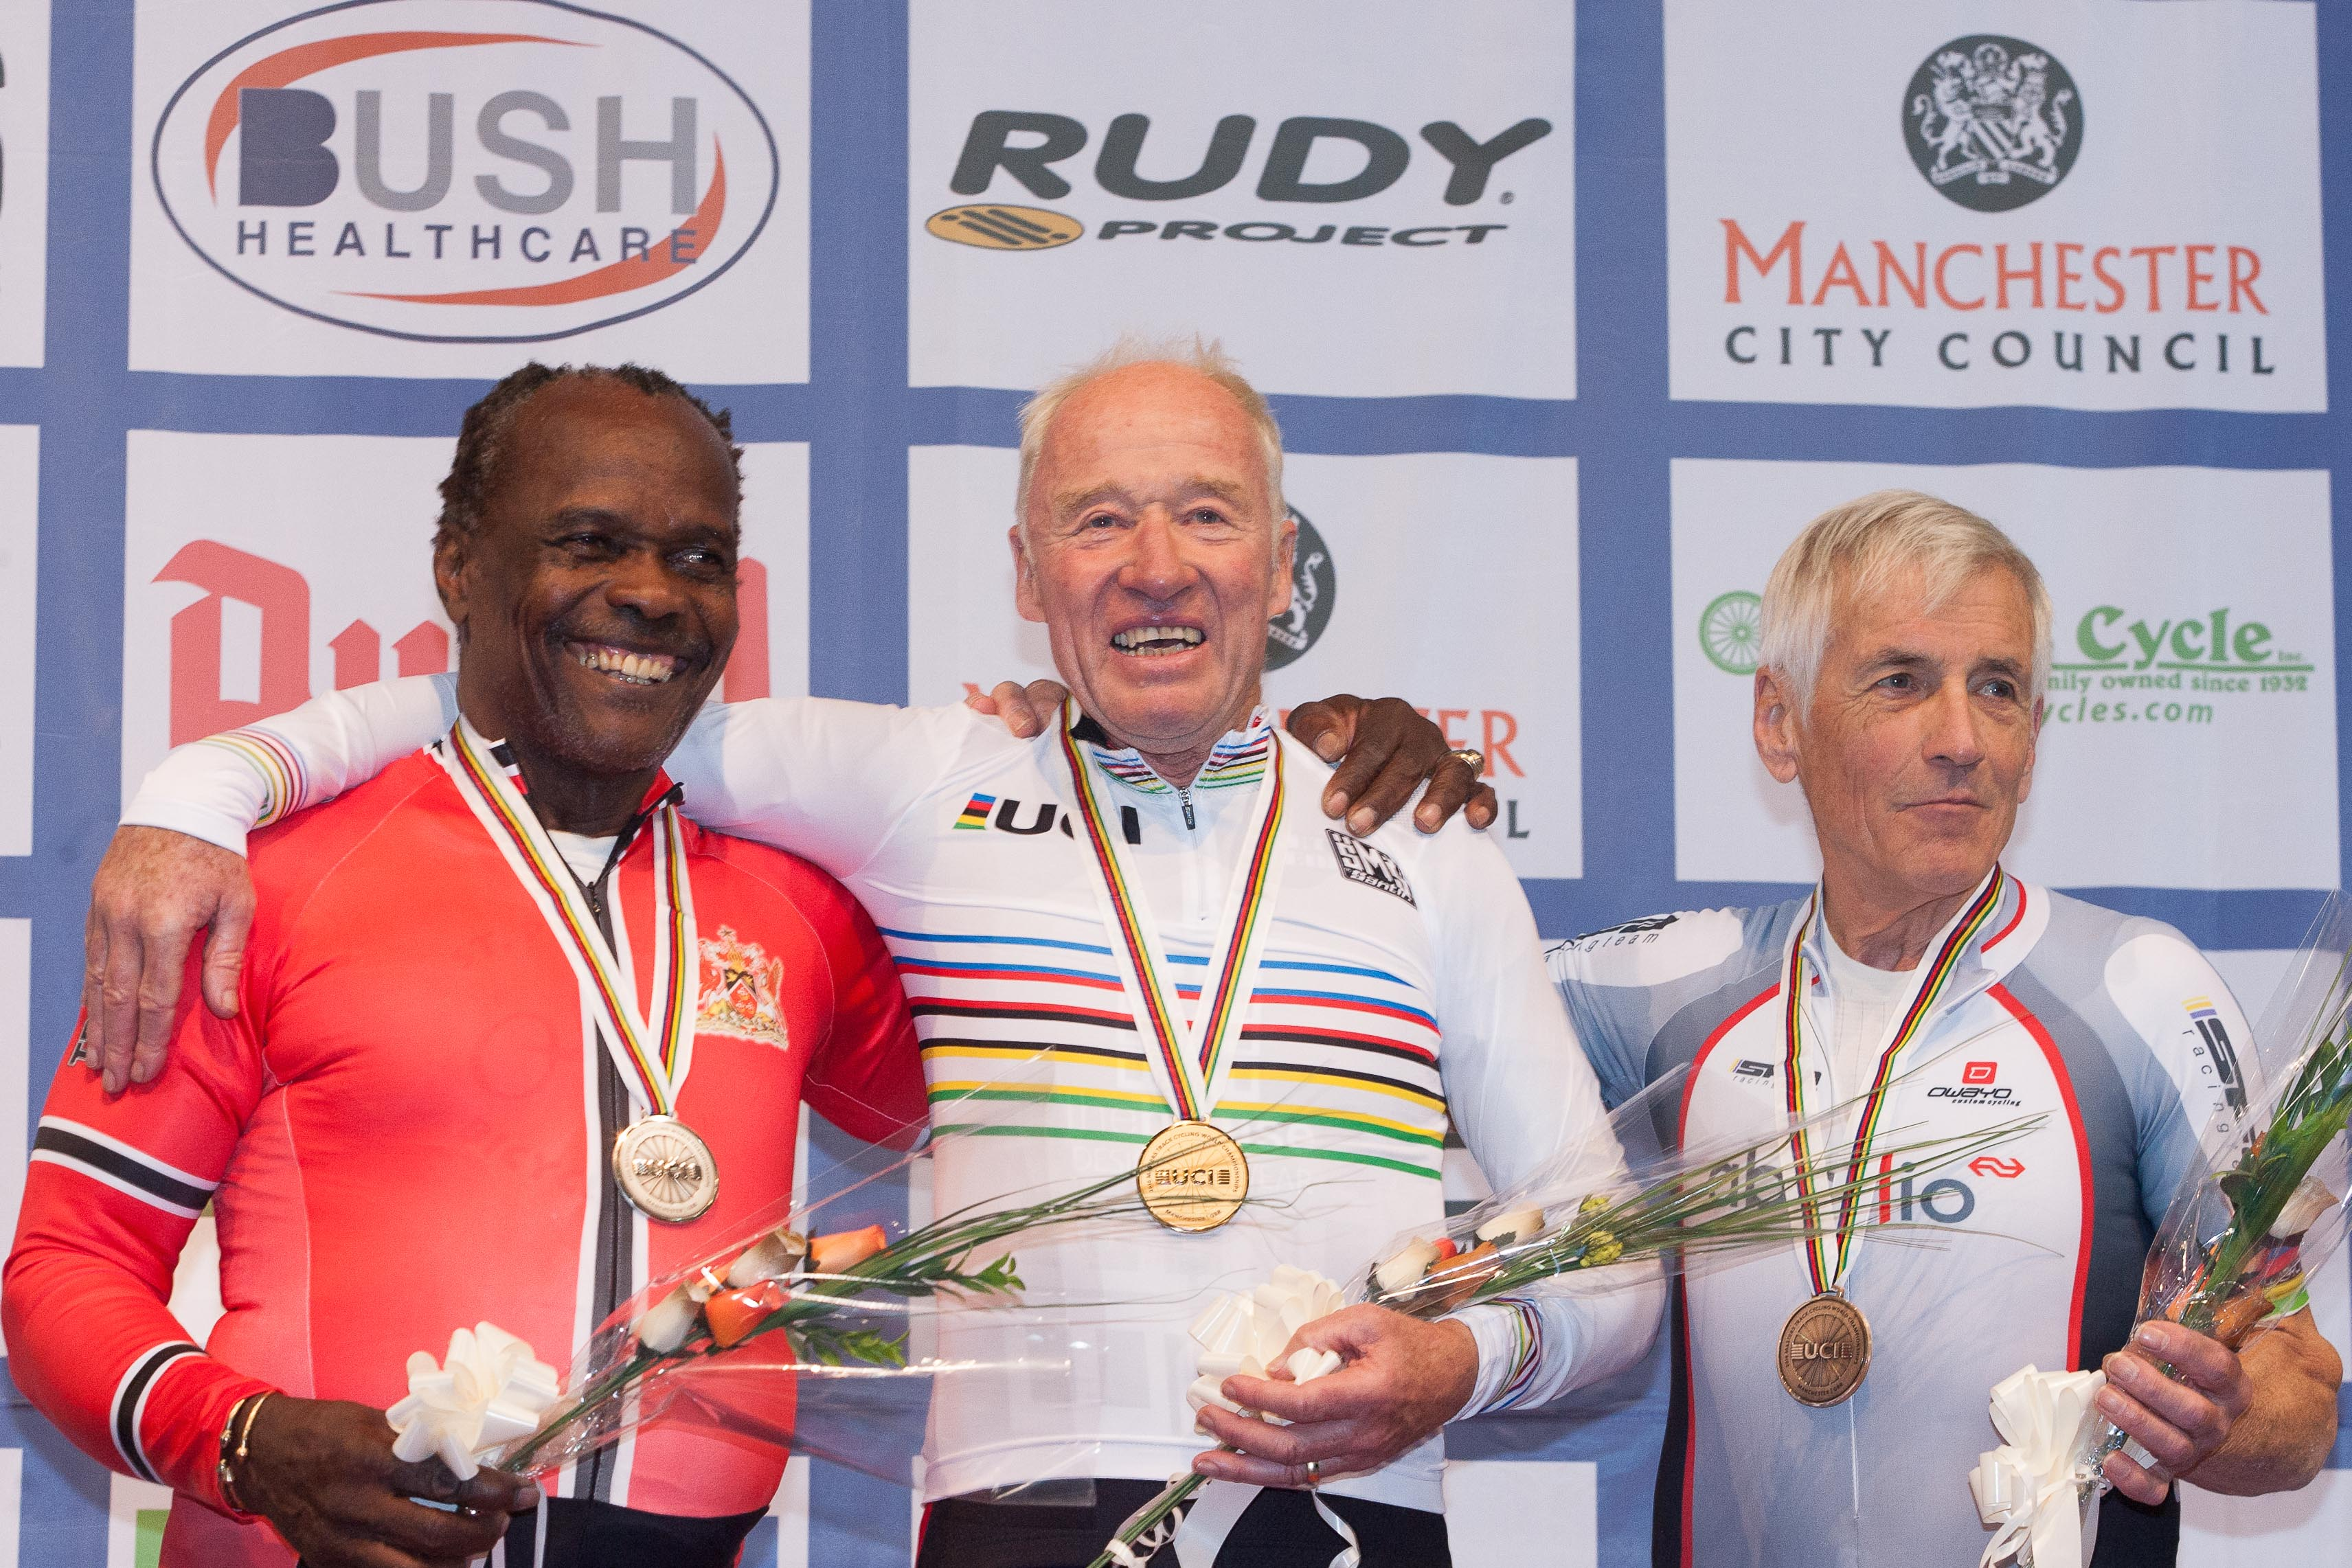 Peter Smith, World Masters Cycling Track champion